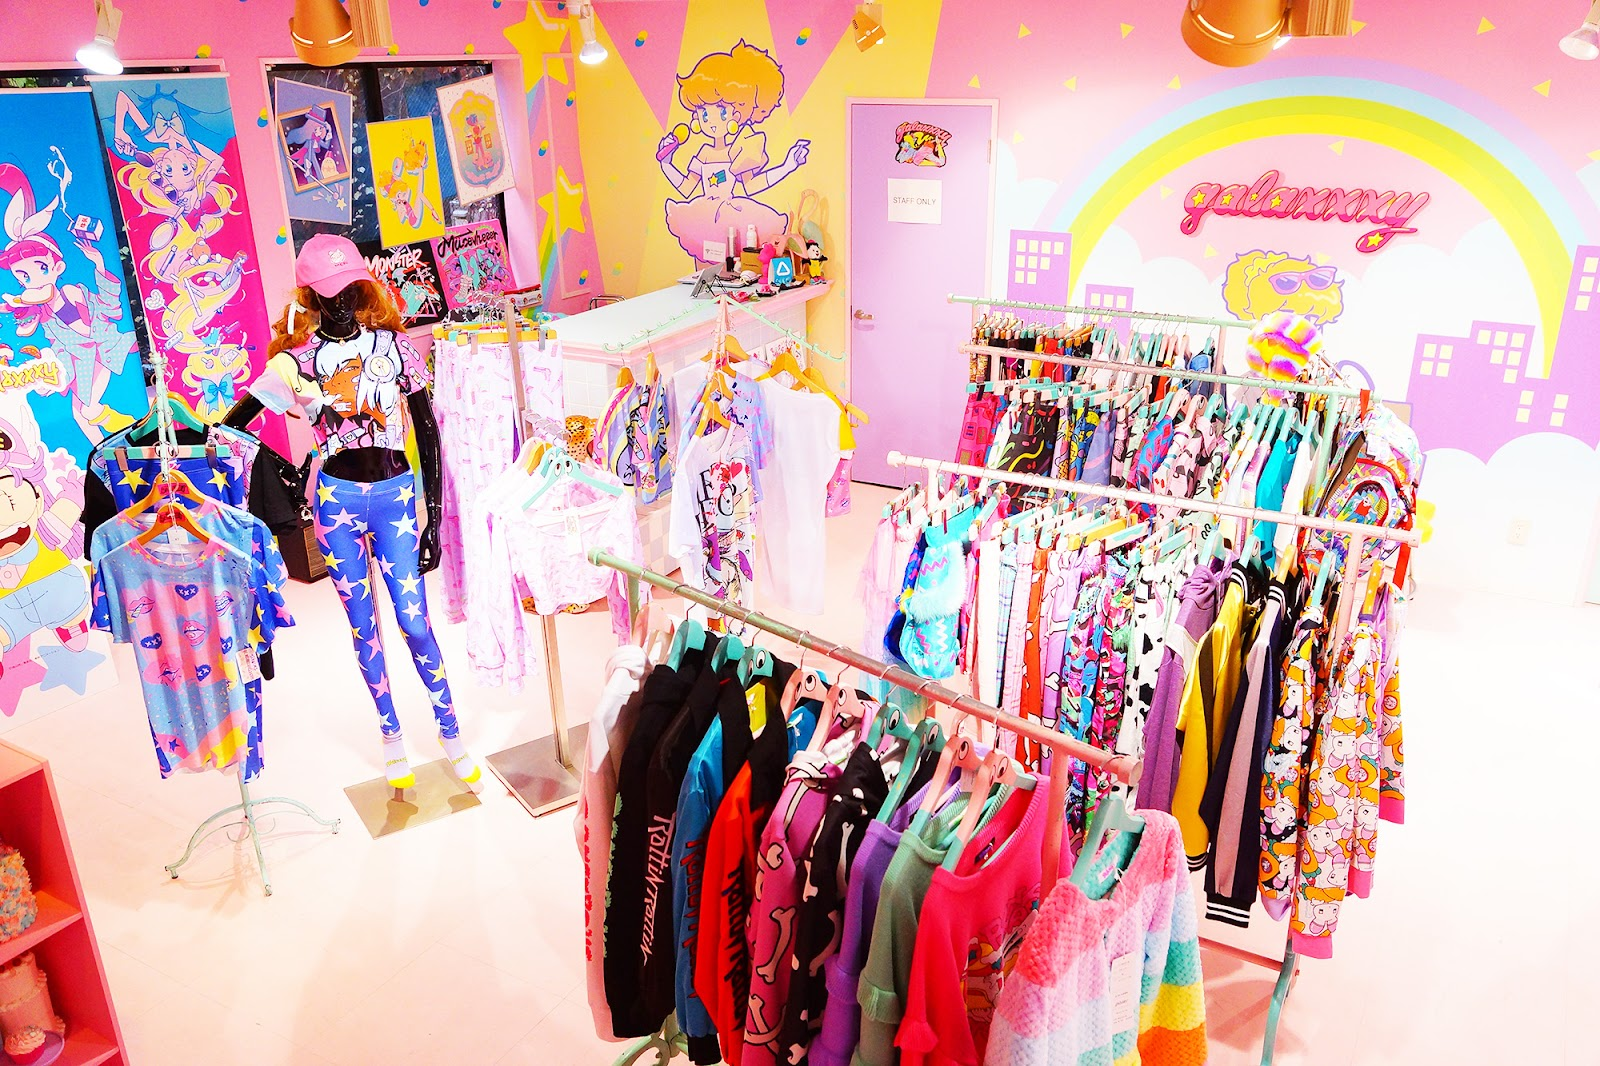 Ultra-bright and In Your Face: galaxxxy is the Ultimate Harajuku Clothing Store